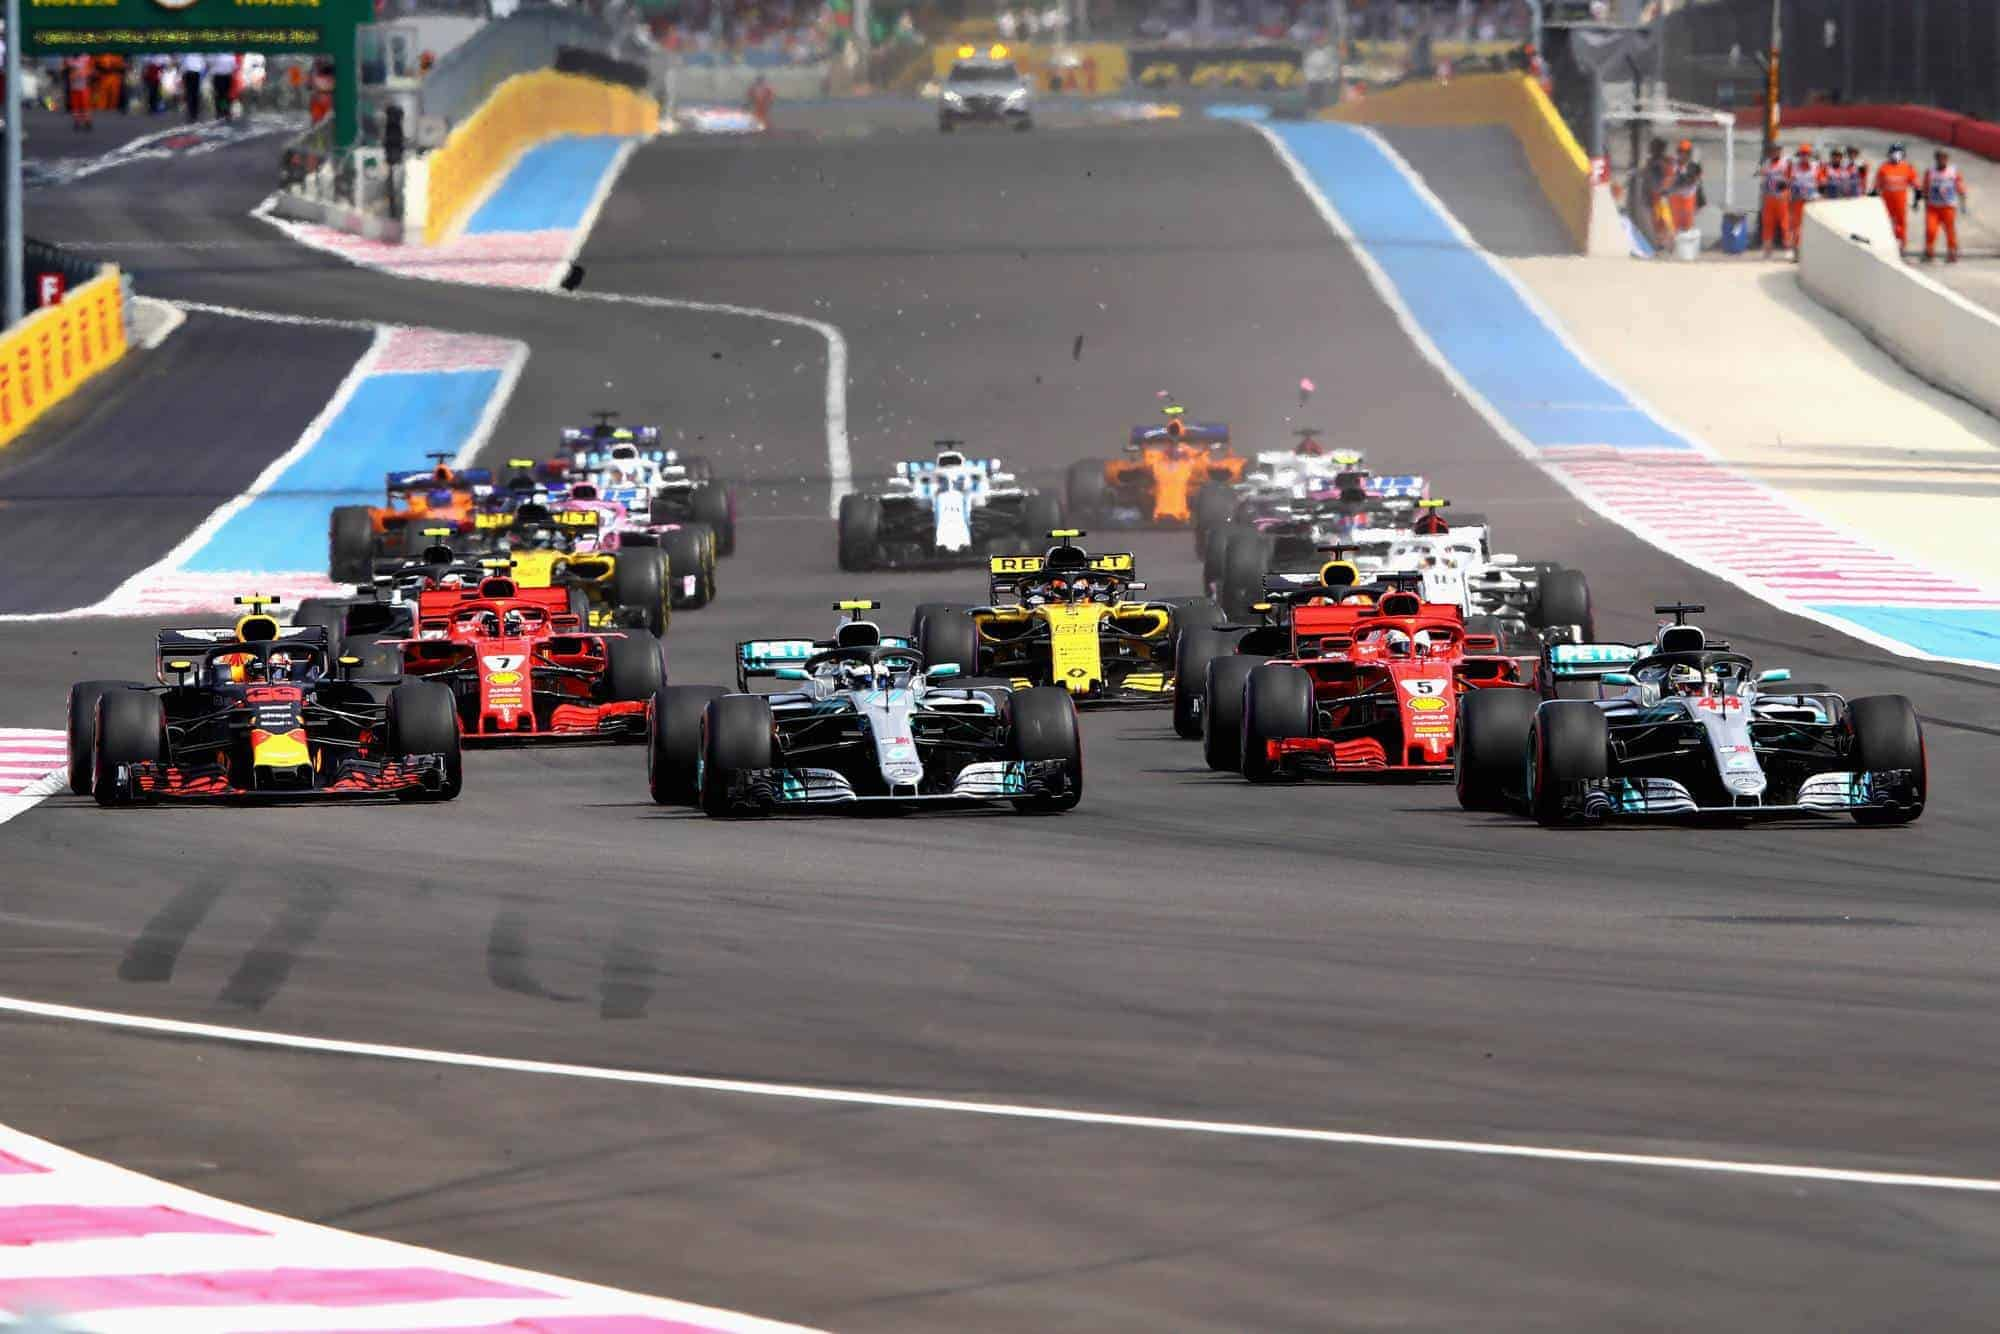 French GP F1 2018 start Photo Red Bull